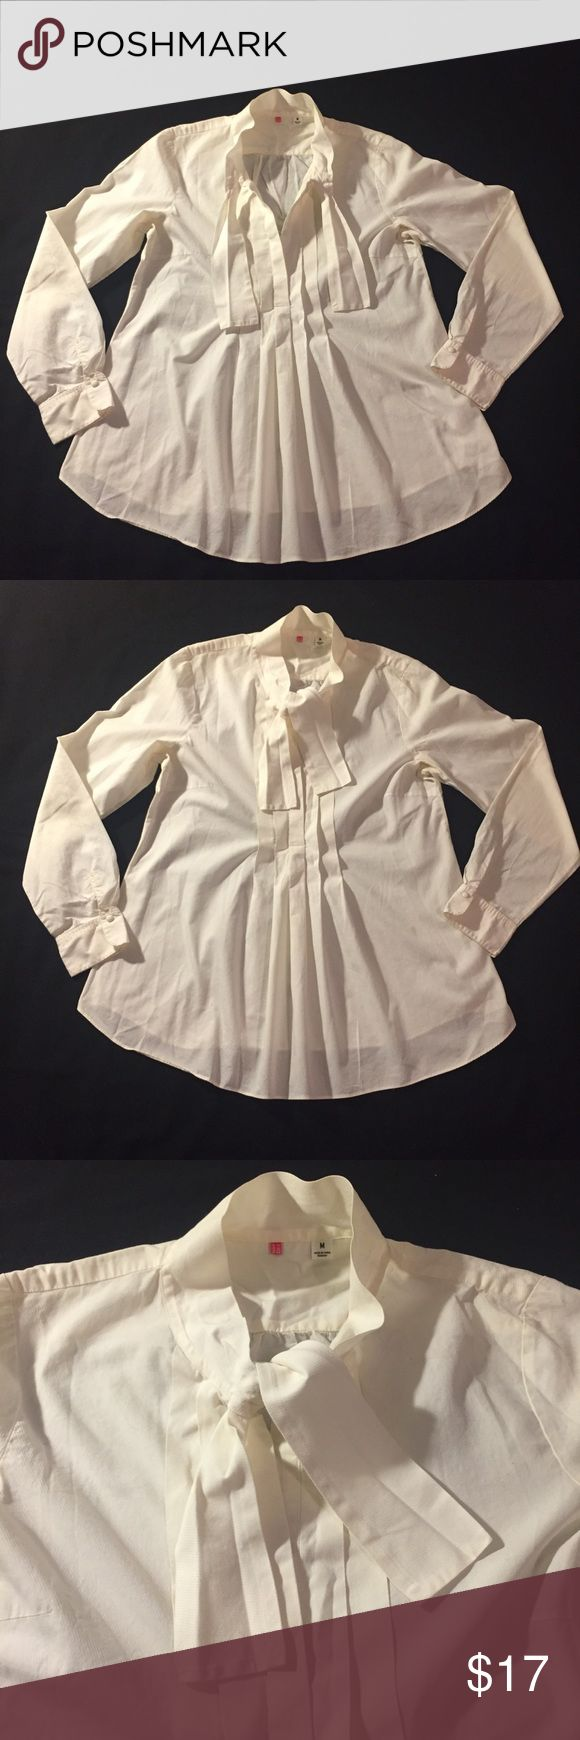 "UNIQLO Crisp Pleated BOHO Poets Blouse / Tunic Crisp Cotton Twill - Awesome White Shirt with Neck Tie Detail and pleated Front Great Condition - worn only 2 or 3 times Pit to pit 19"", length 27"" - more volume towards the bottom due to pleats This is awesome loose over shorts and boots, or elegant buttoned up and tucked into a pencil skirt..  smoke free household Uniqlo Tops Tunics"